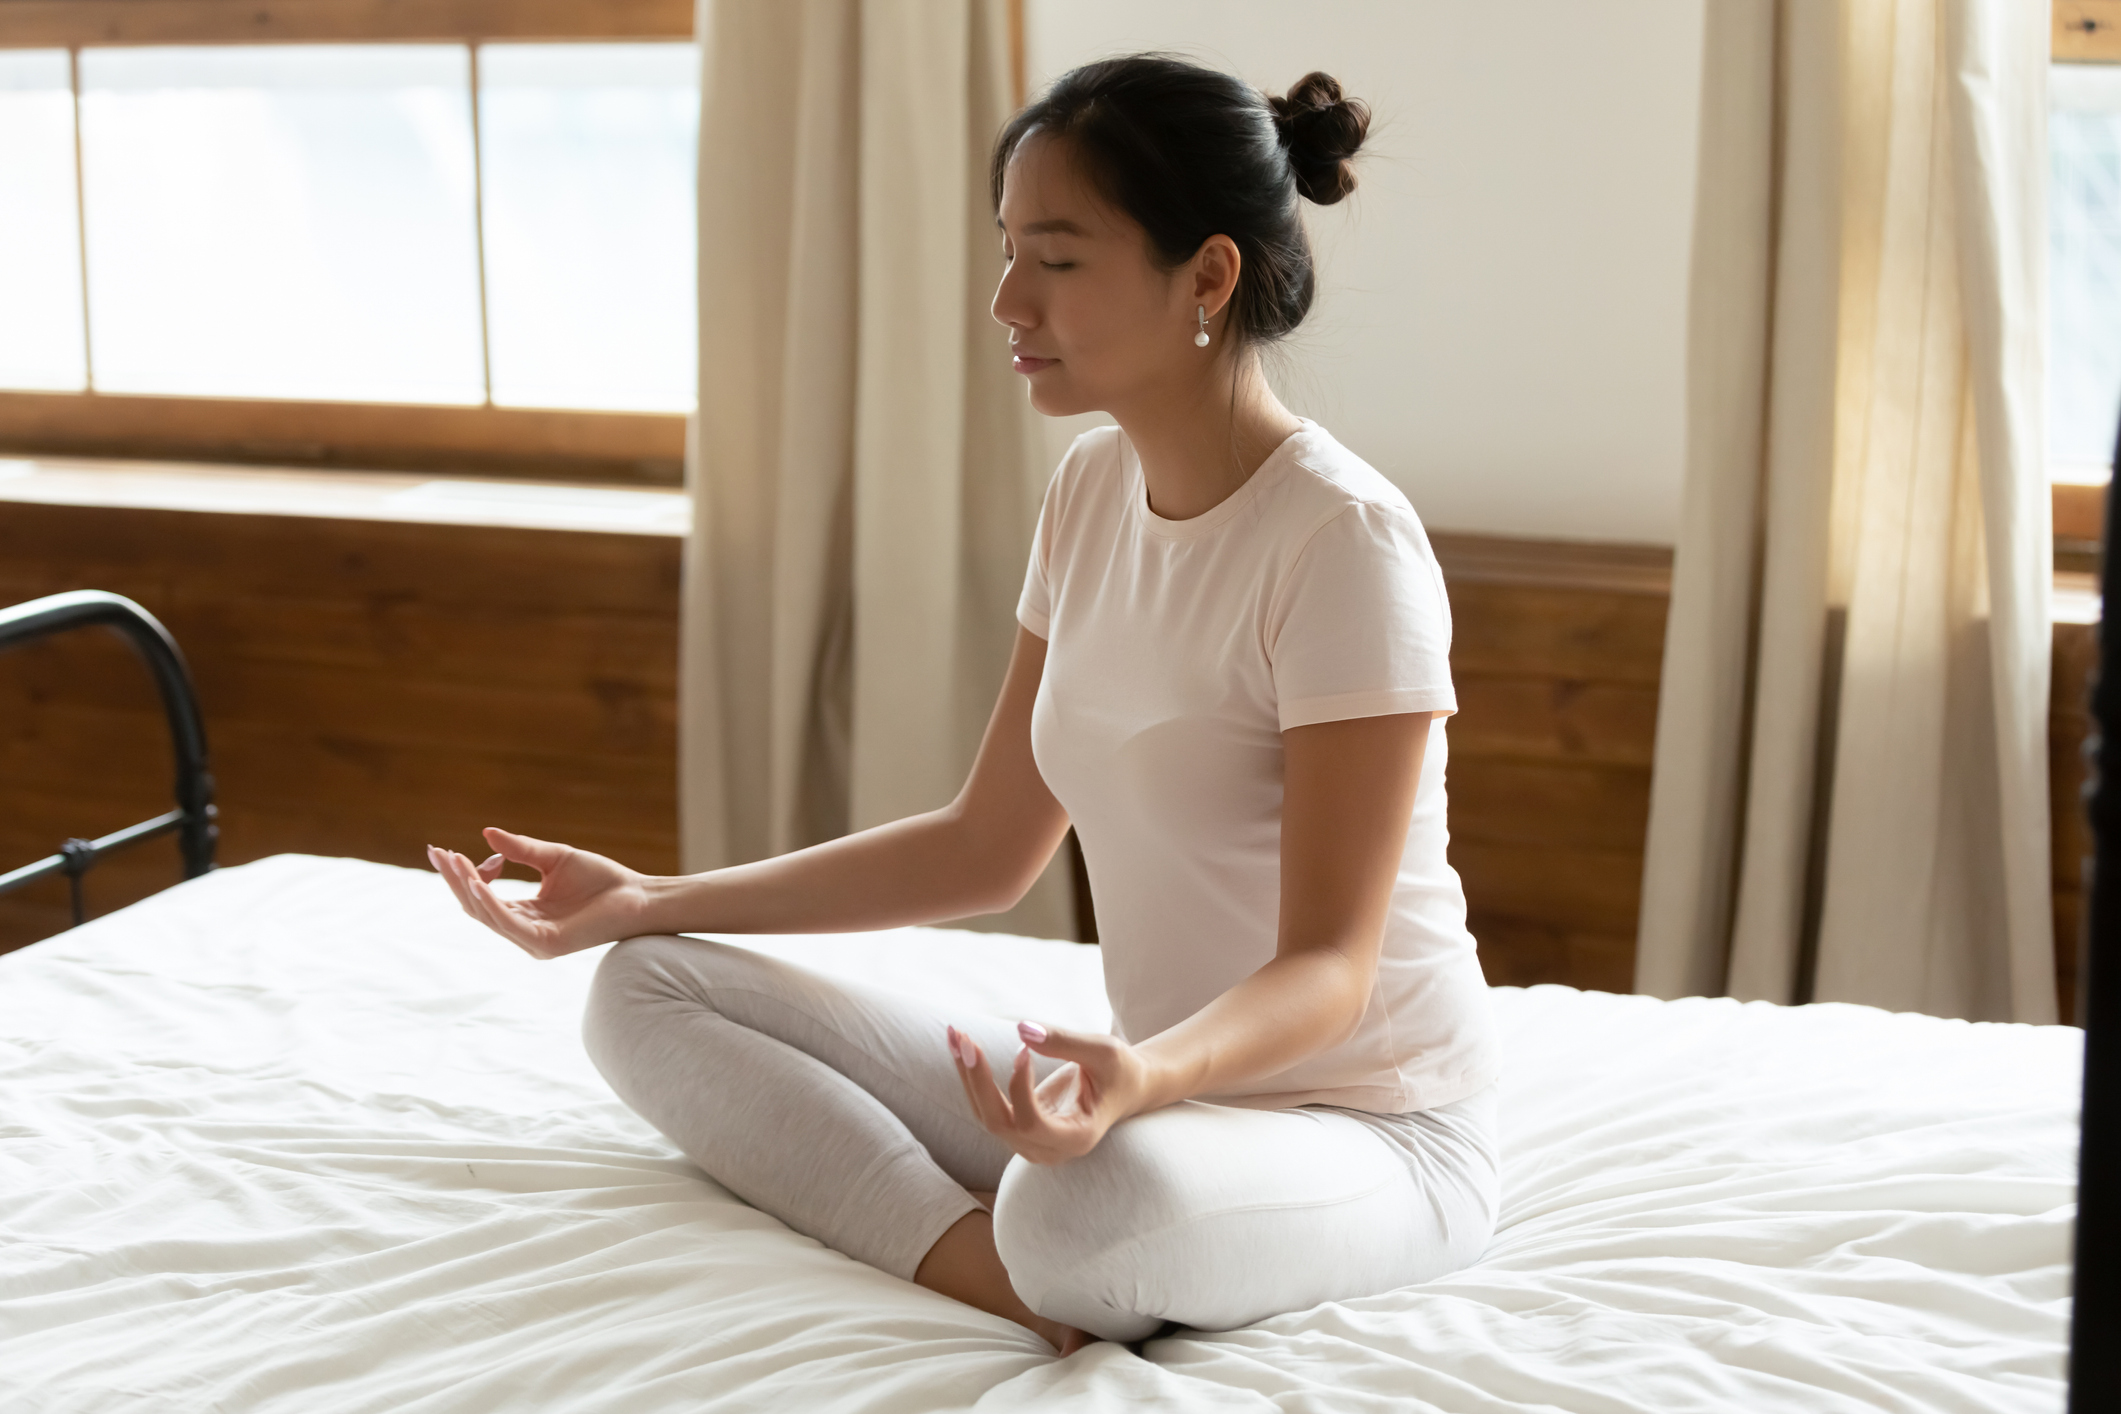 5 Ways To Mix Up Your Spiritual Practice During The Pandemic